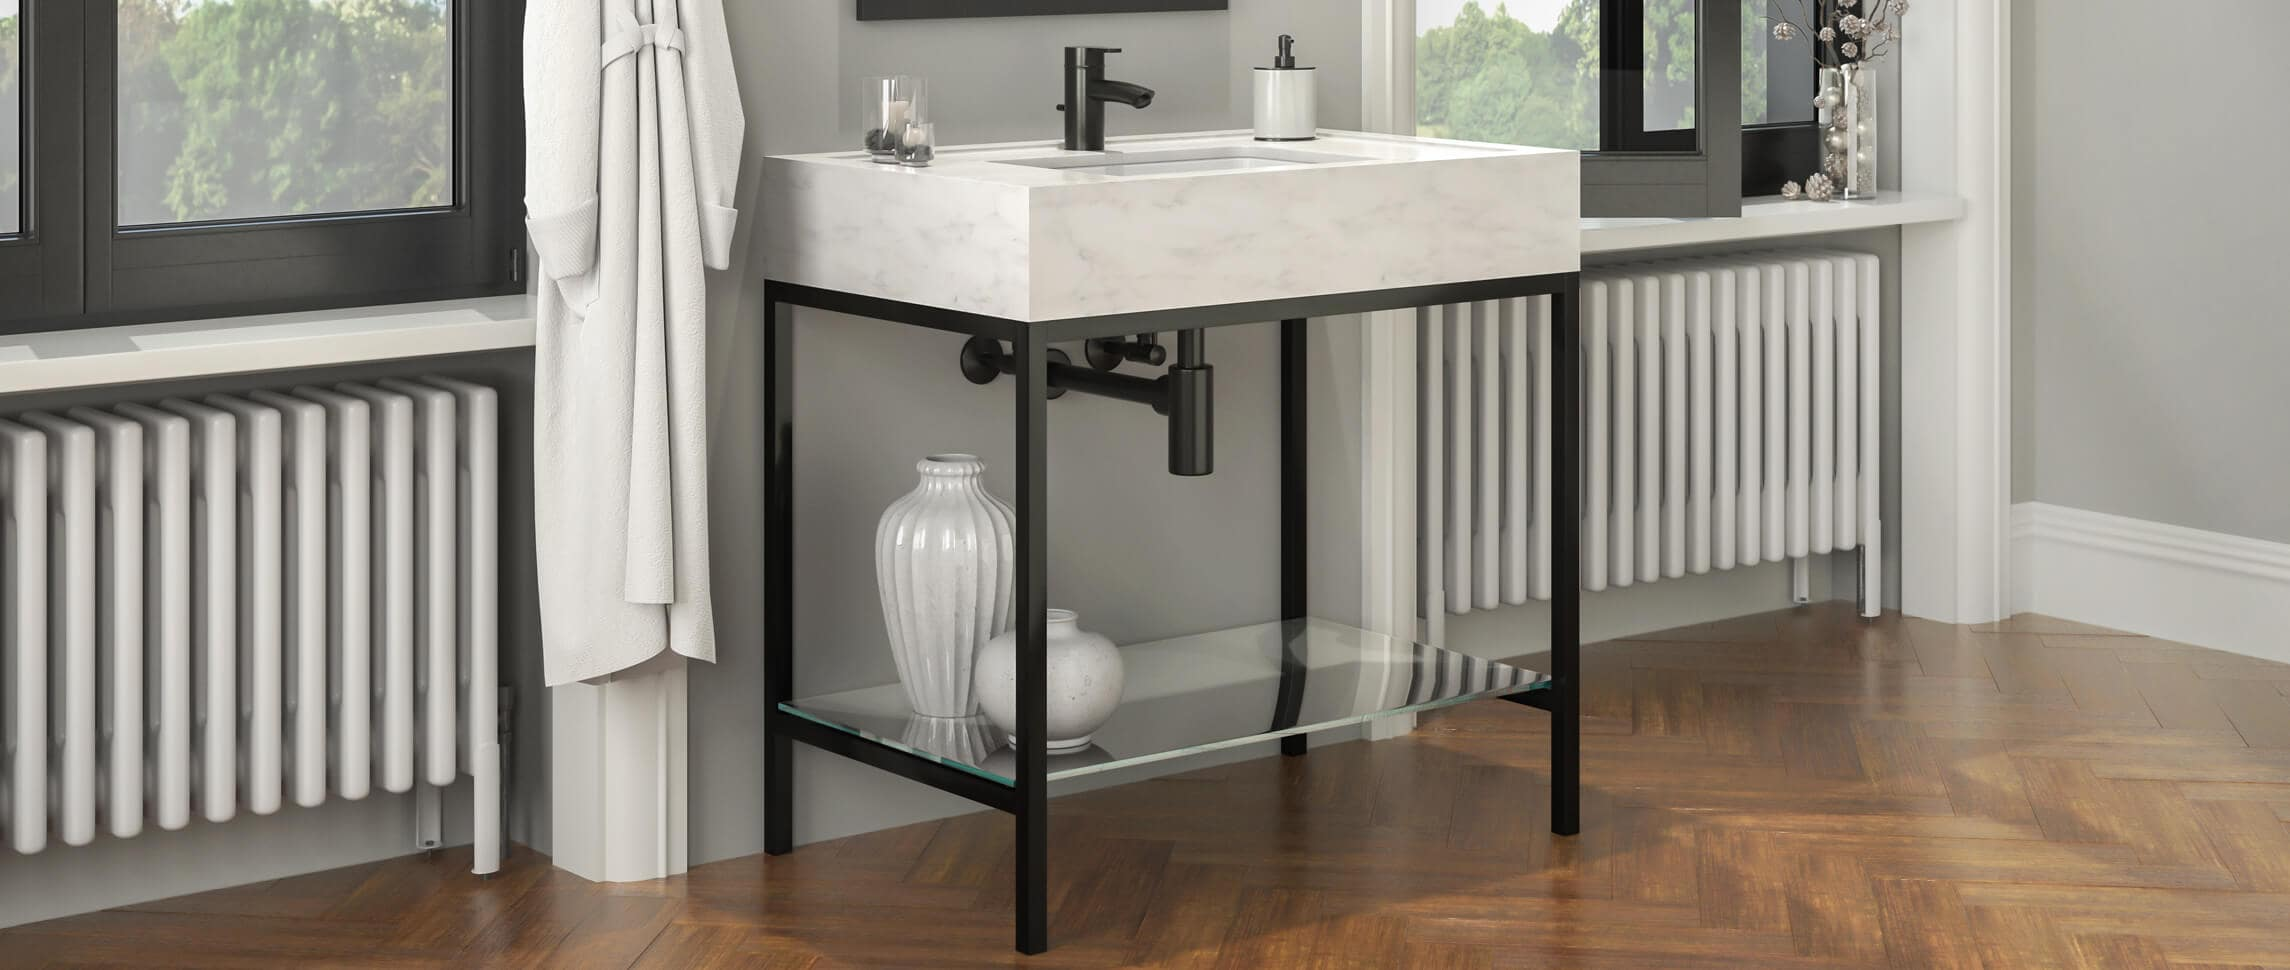 Palmer Industries Linear style metal washstand vanity finished in matte black powder coat